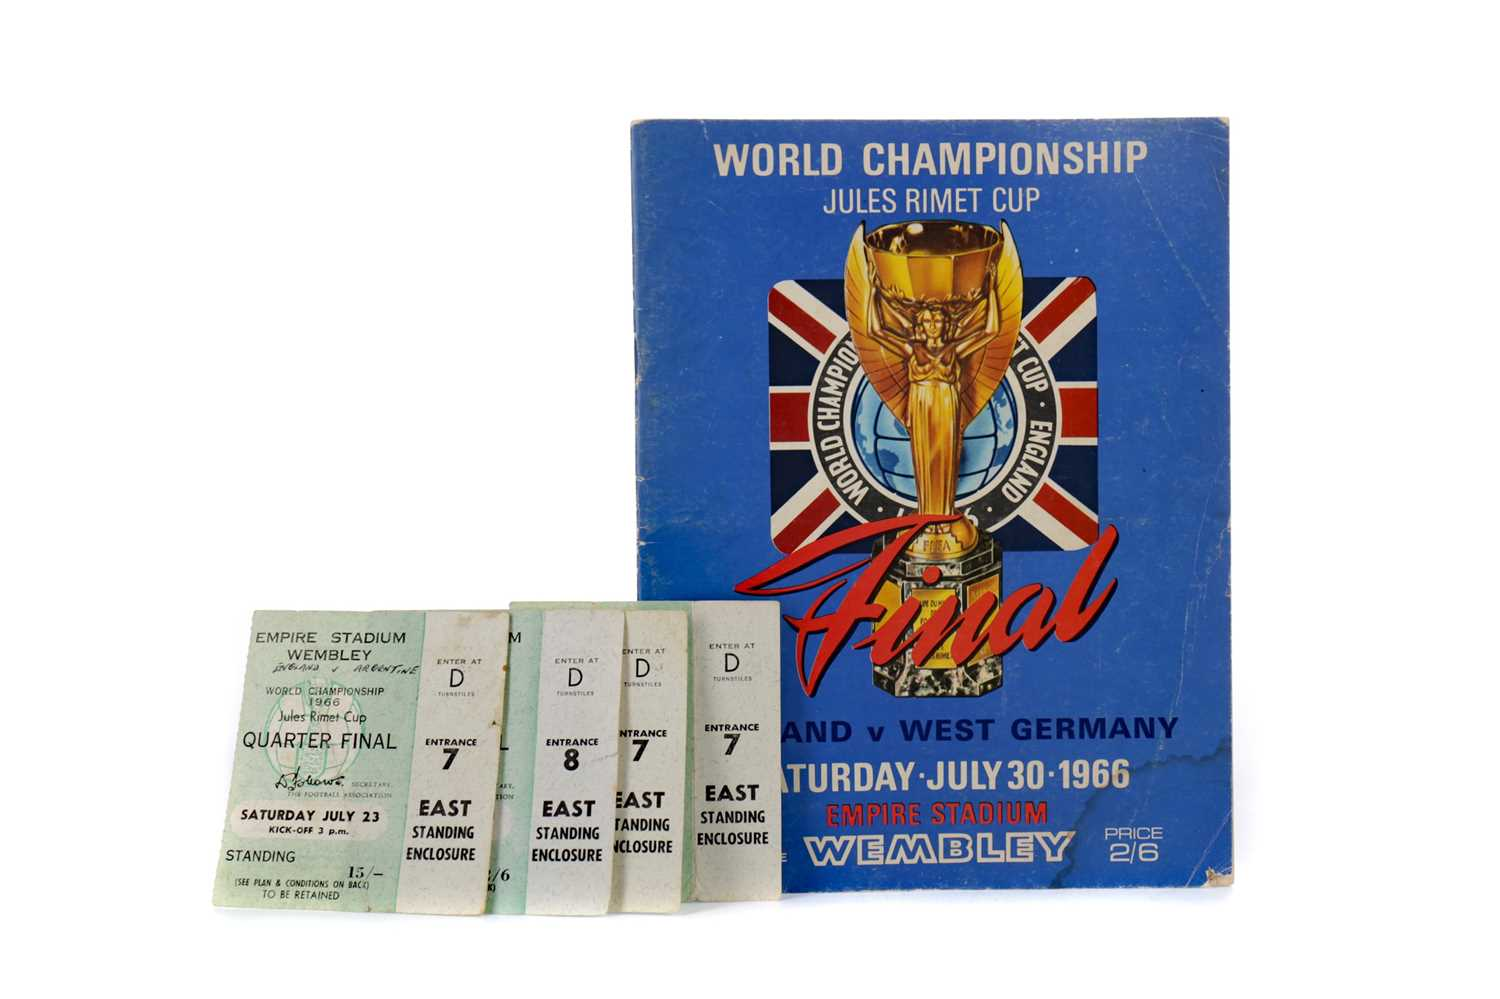 Lot 1758 - AN ENGLAND VS. WEST GERMANY WORLD CUP FINAL PROGRAMME 1966